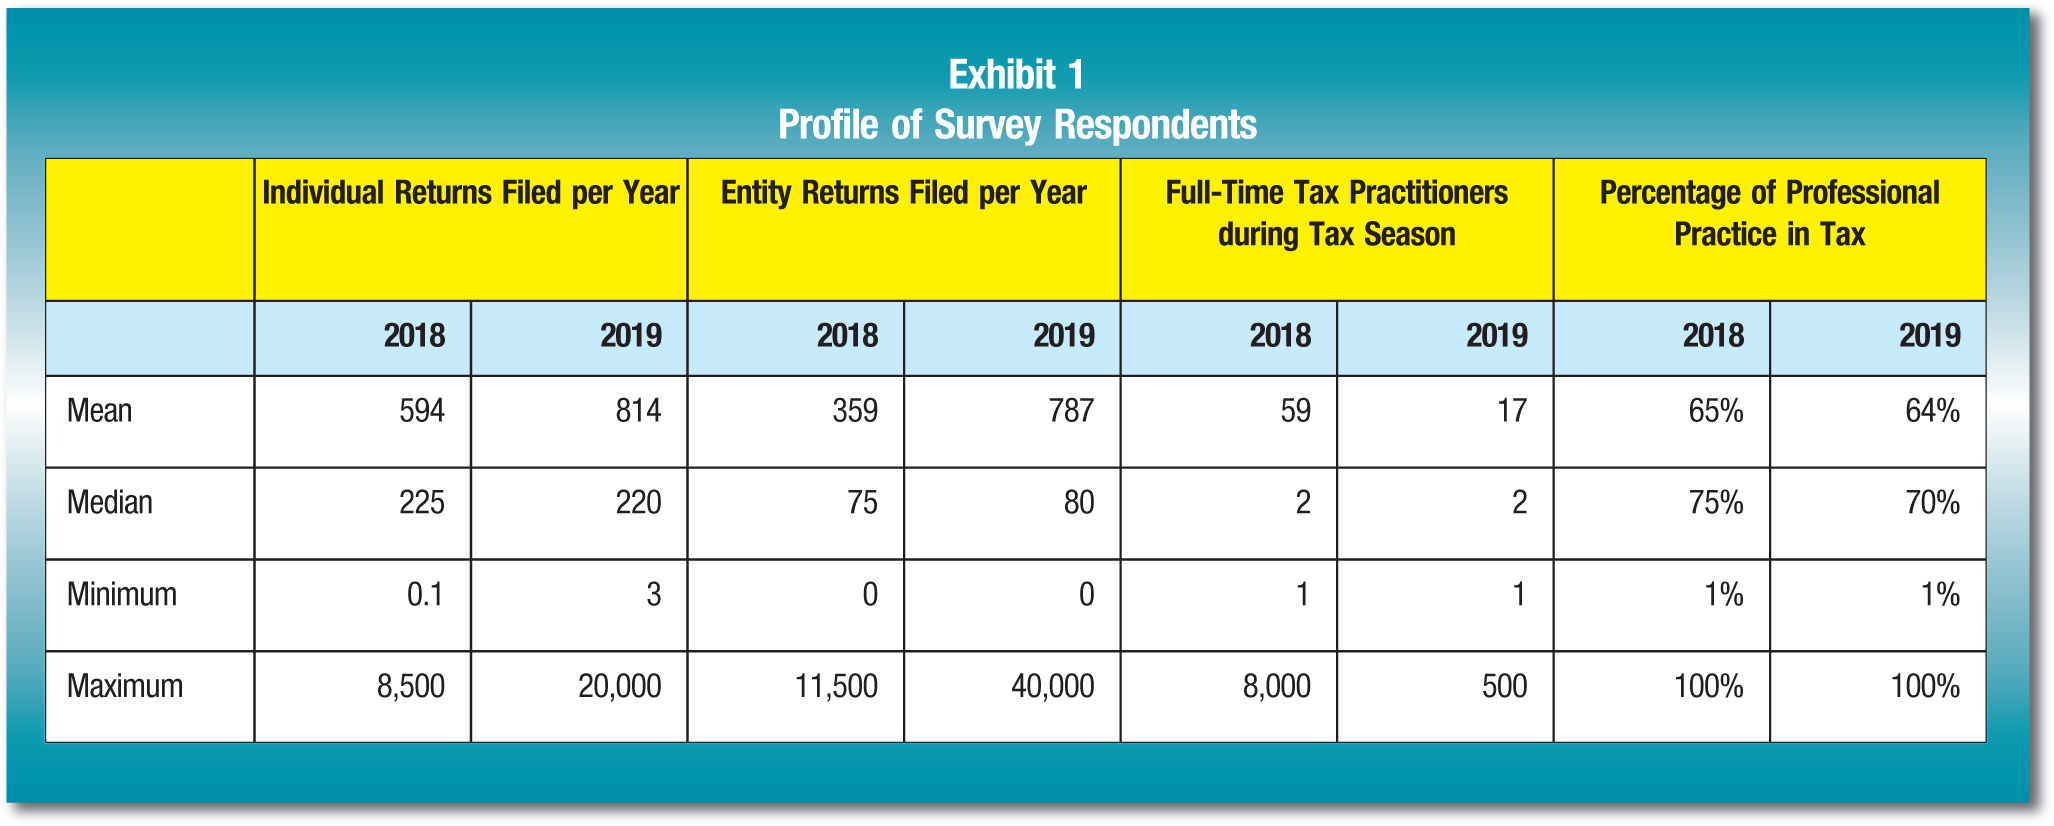 Individual Returns Filed per Year; Entity Returns Filed per Year; Full-Time Tax Practitioners during Tax Season; Percentage of Professional Practice in Tax 2018; 2019; 2018; 2019; 2018; 2019; 2018; 2019 Mean; 594; 814; 359; 787; 59; 17; 65%; 64% Median; 225; 220; 75; 80; 2; 2; 75%; 70% Minimum; 0.1; 3; 0; 0; 1; 1; 1%; 1% Maximum; 8,500; 20,000; 11,500; 40,000; 8,000; 500; 100%; 100%